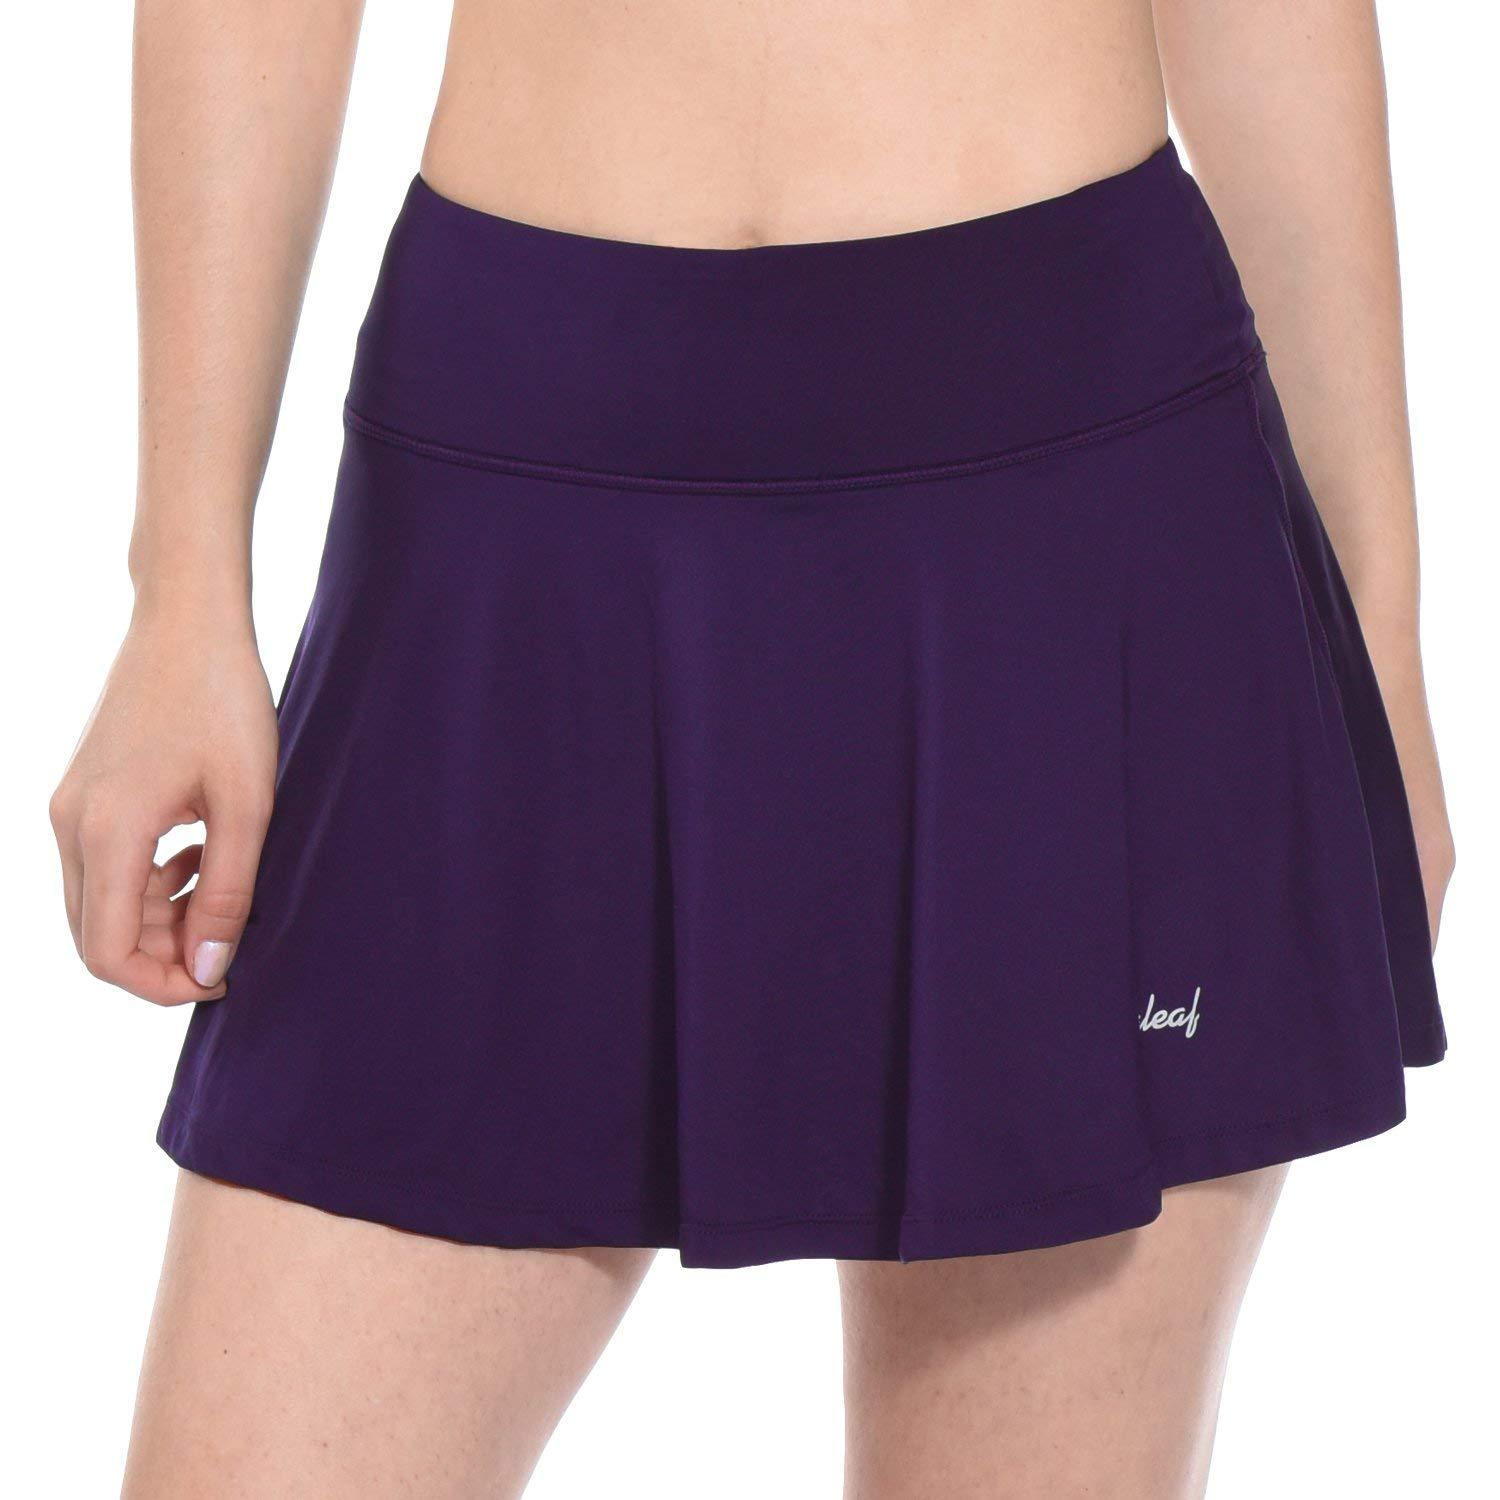 BALEAF Women's Running Skirt Lightweight Skort for Tennis Golf Workout Purple Size XL by BALEAF